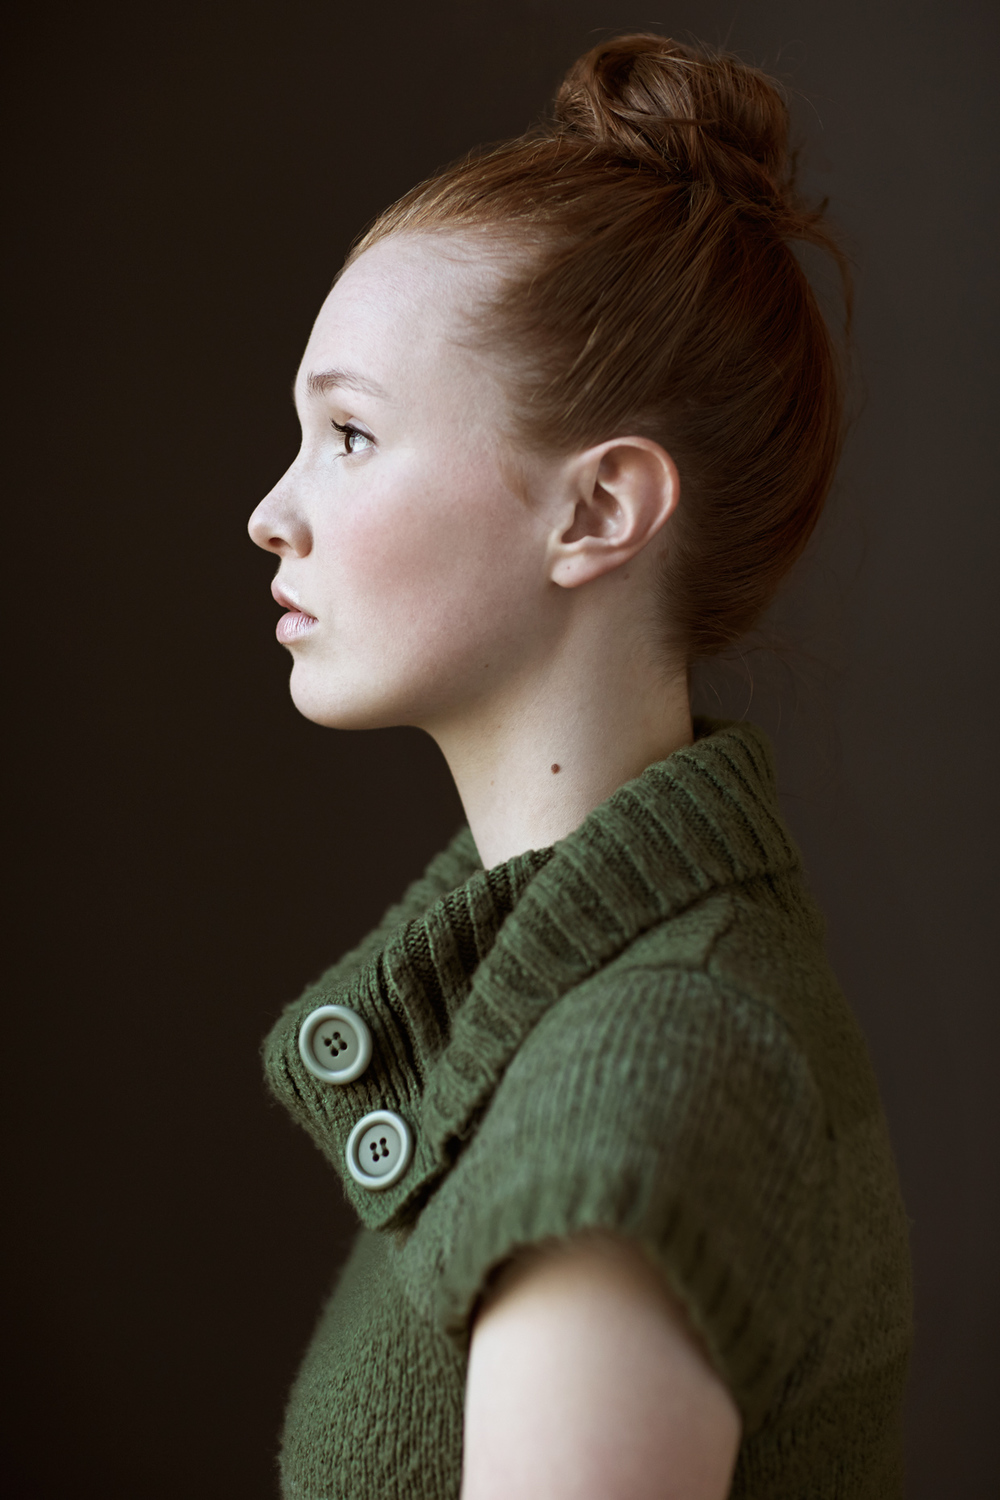 Portrait Photography Derek Israelsen Girl Side Profile